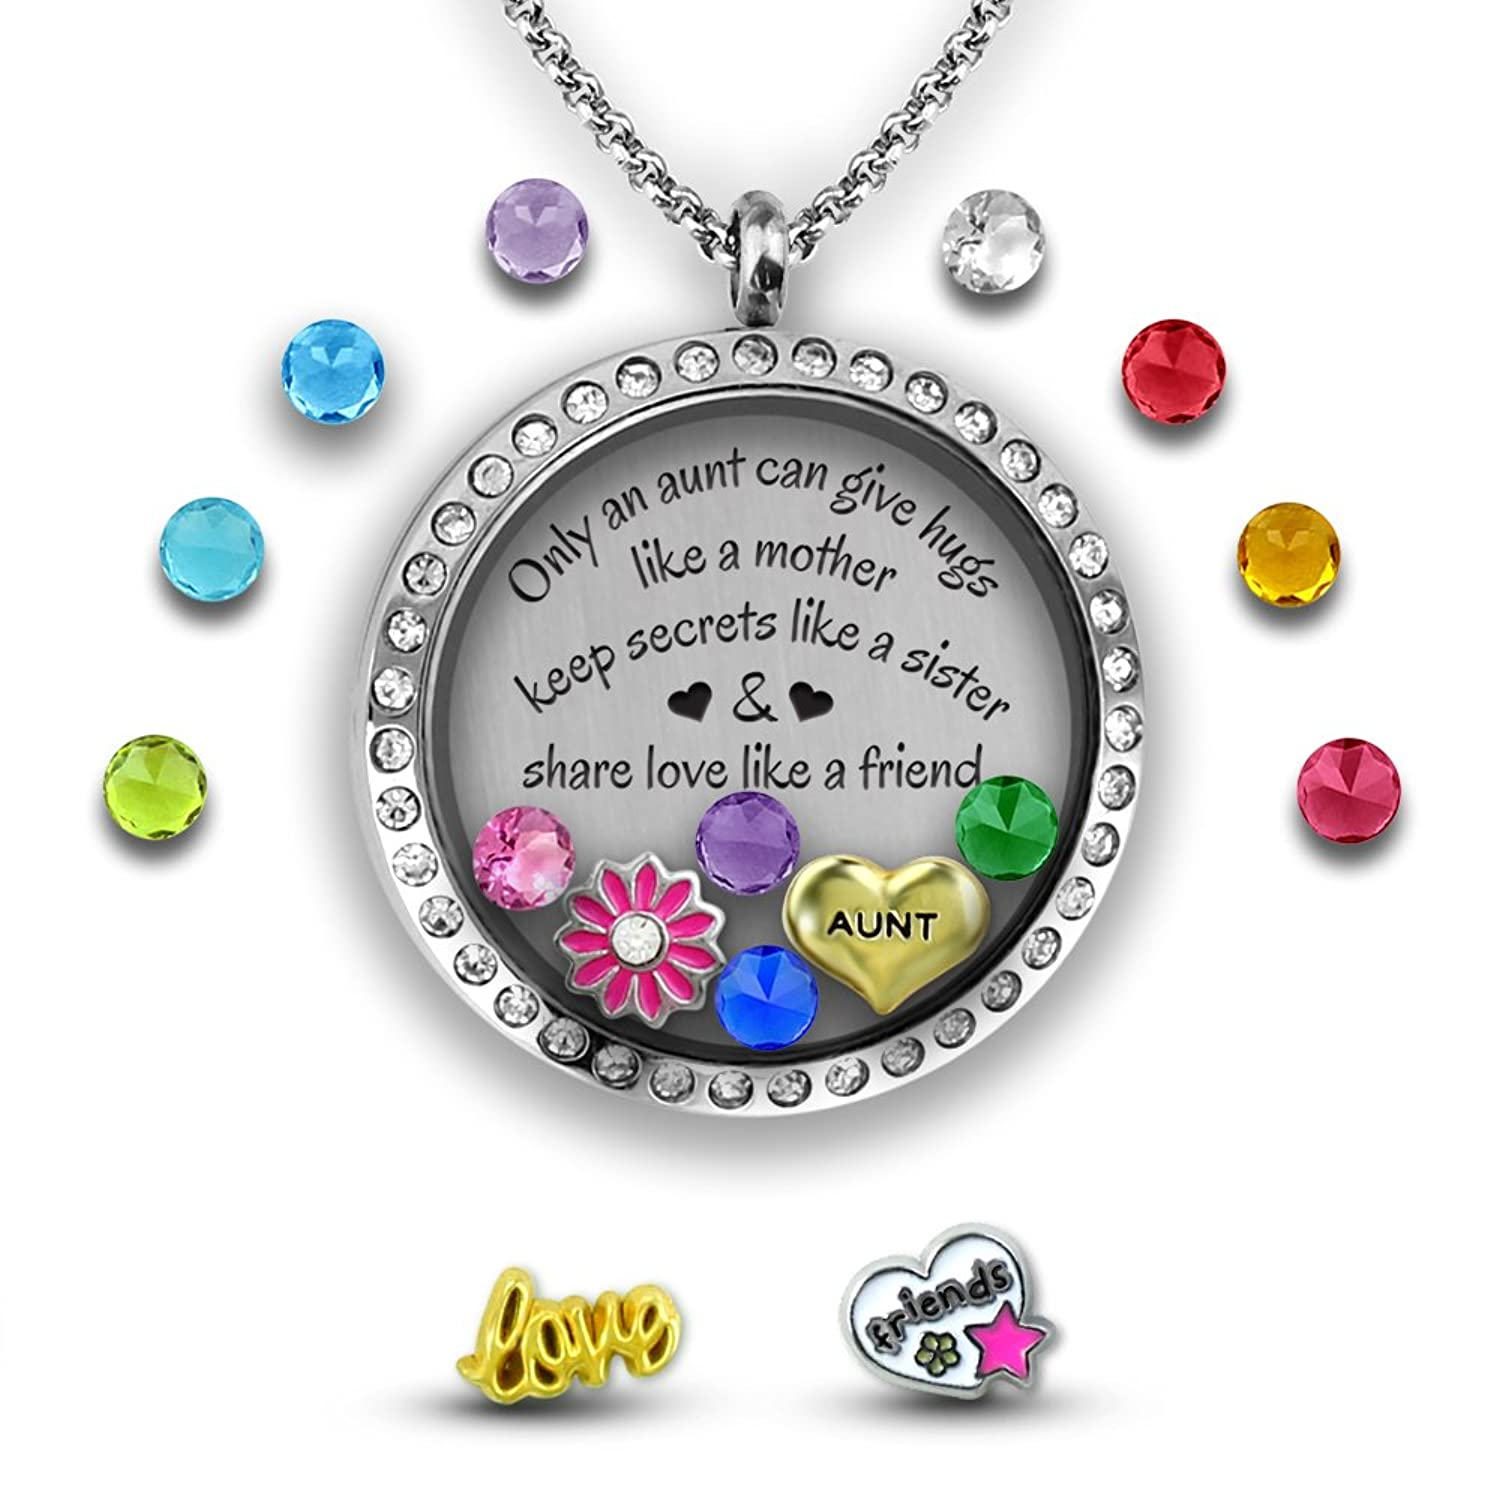 pdp maw a gifts wish dogeared friends family make custom aunt jewelry necklace